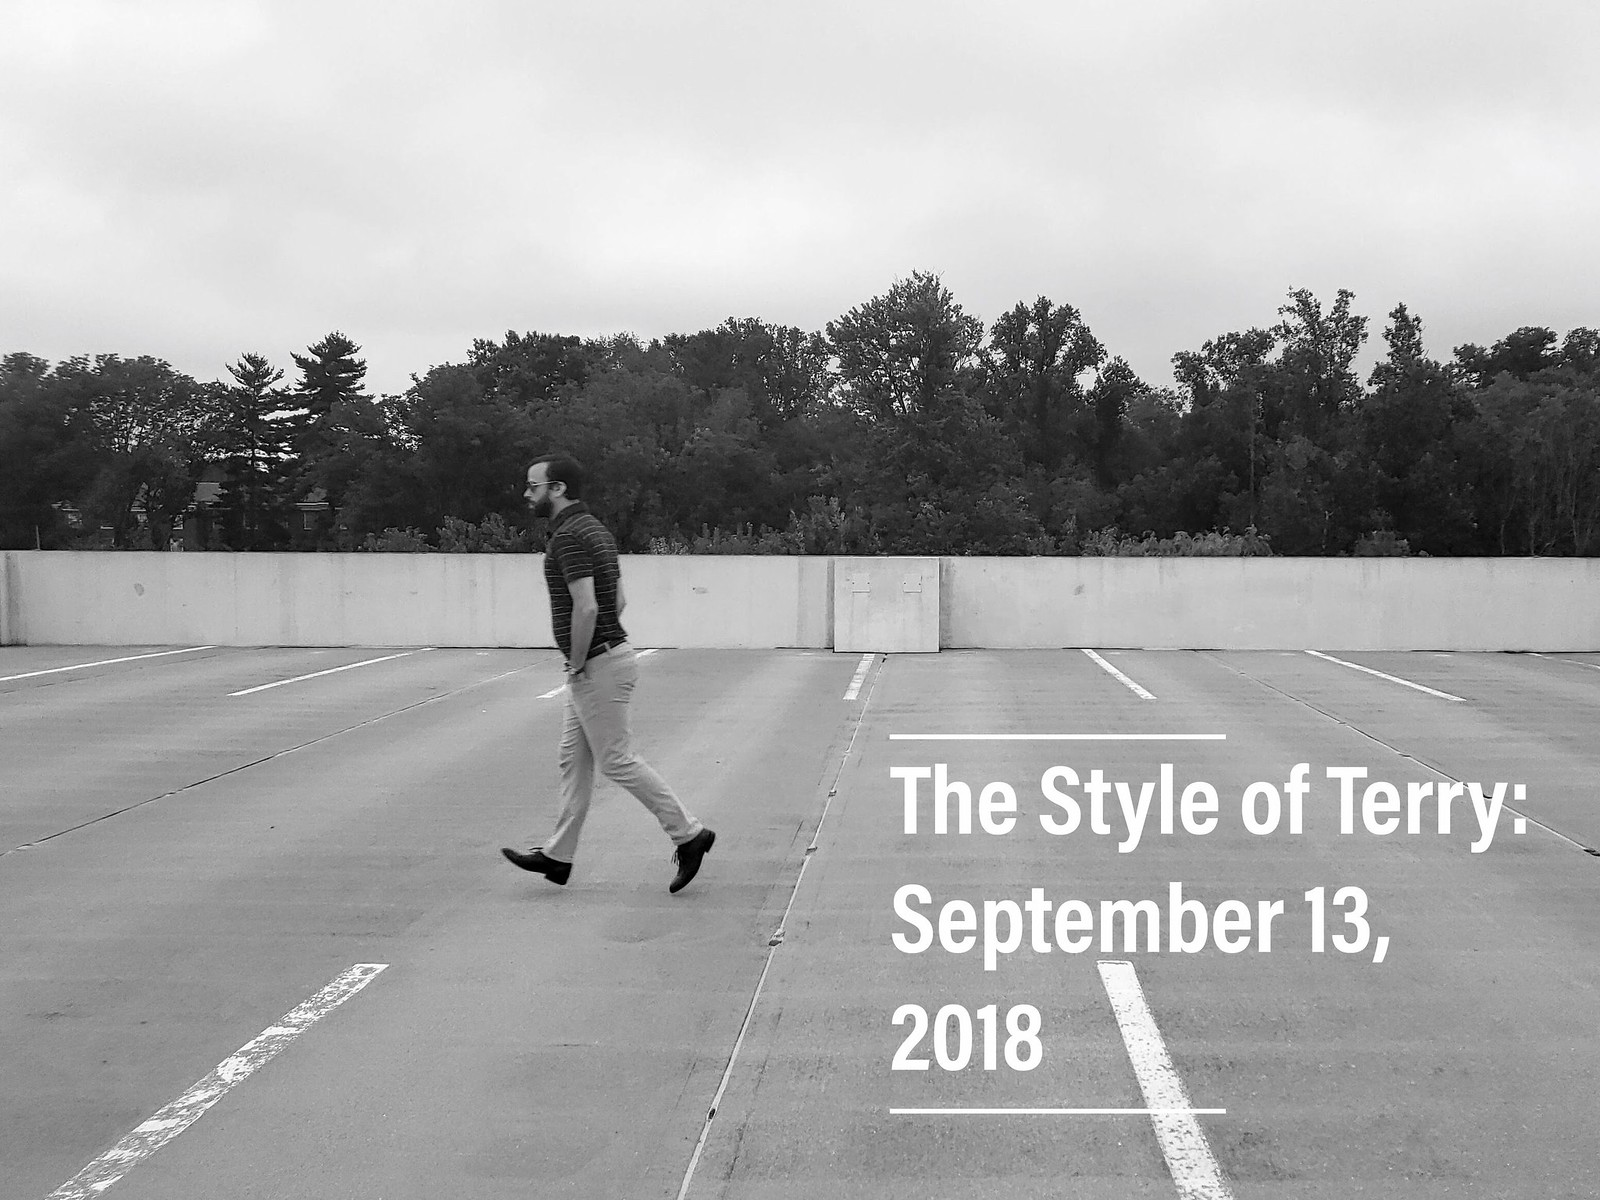 The Style of Terry: 9.13.18